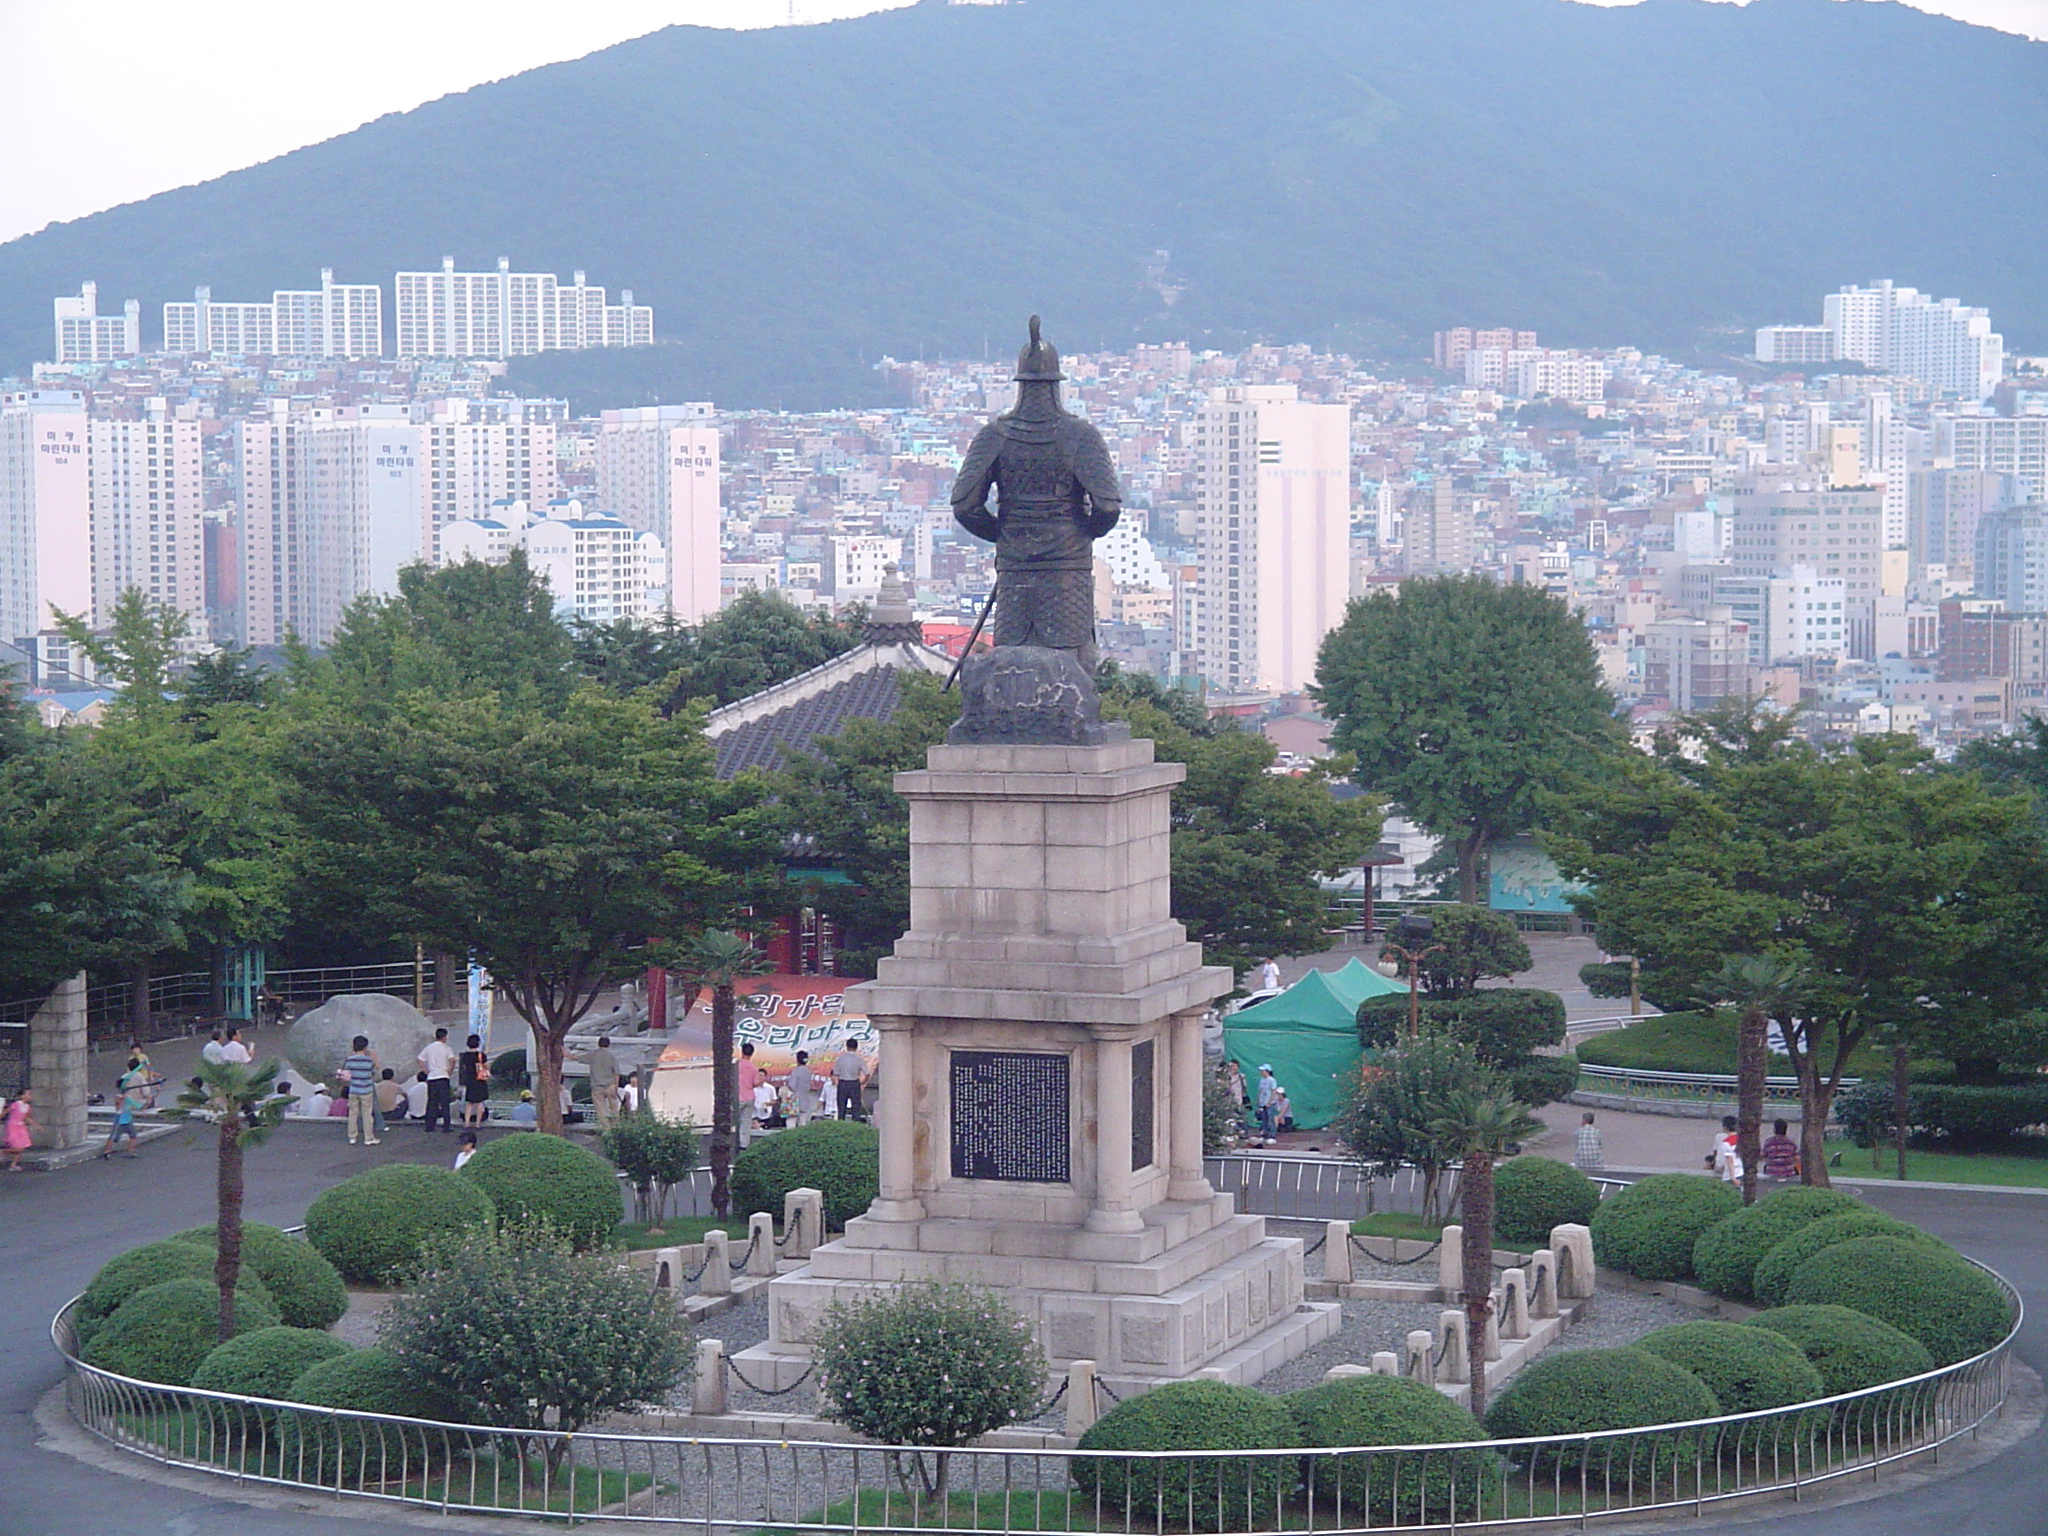 A statue of Admiral I Sunsin in a park atop Busan Tower looks out across the city by day. Photo by Jeff Harr,  CC BY-SA 3.0 .